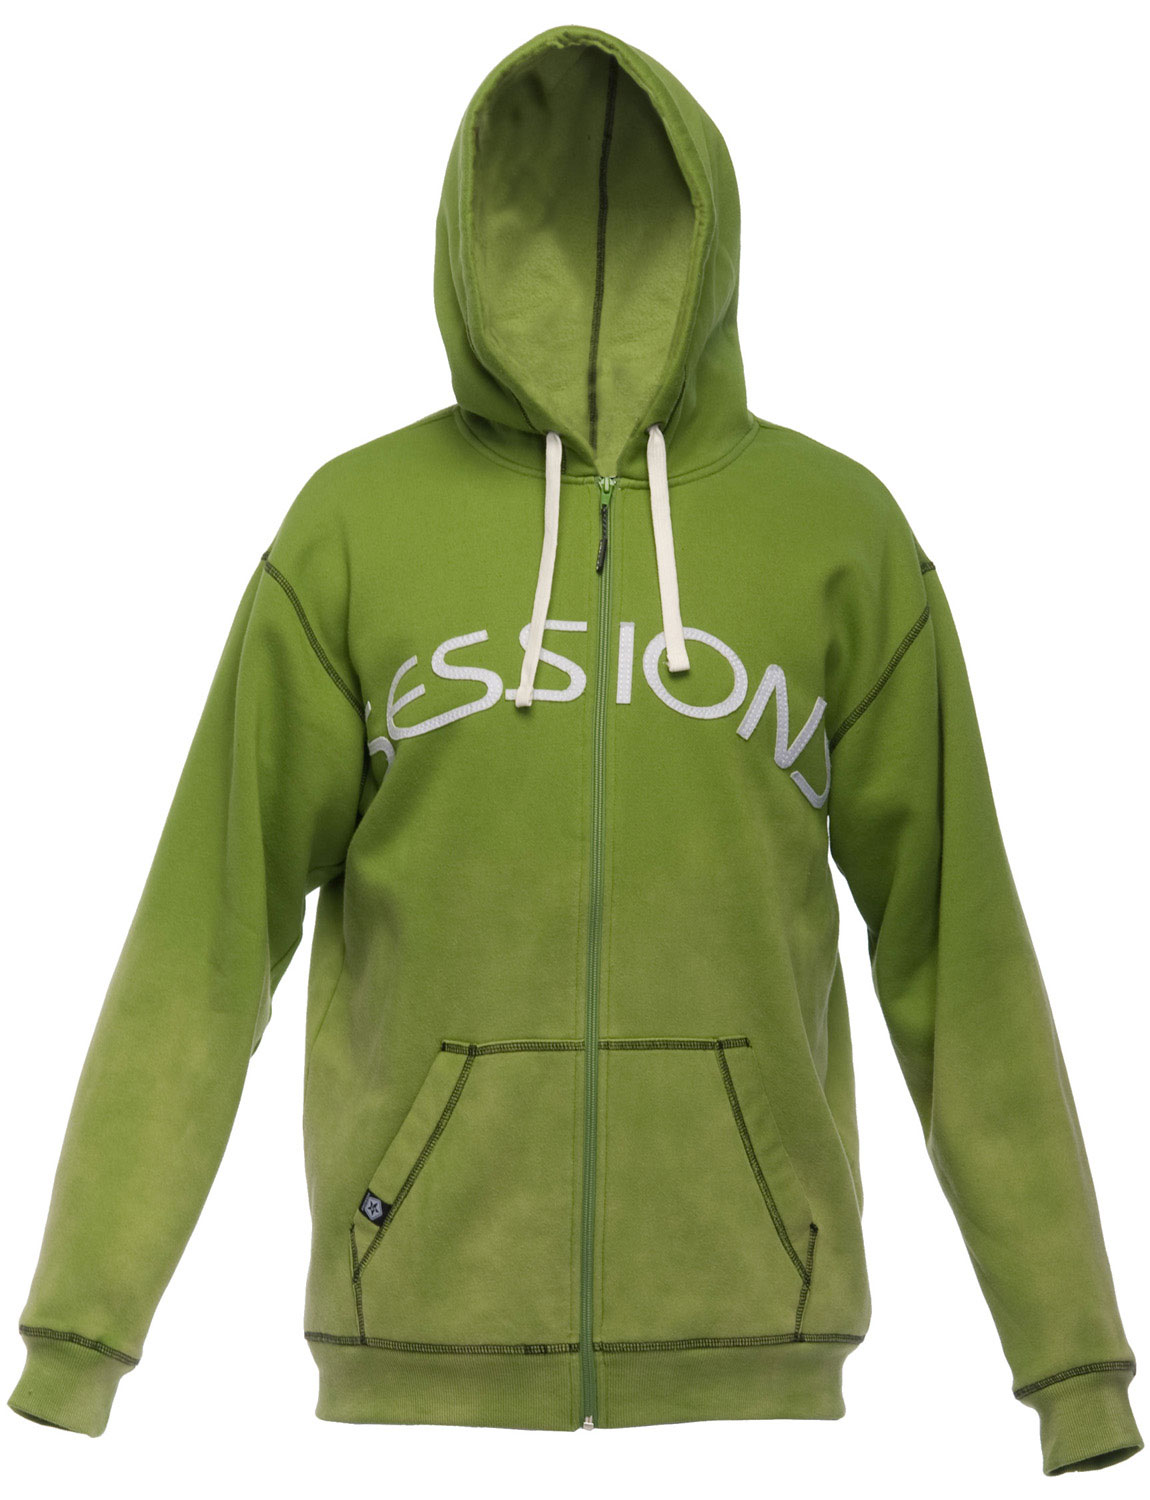 The Sessions Freshman Hoodie. Men's Fleece-Lined Hoodie w/ Felt Patch-On Lettering. - $29.95